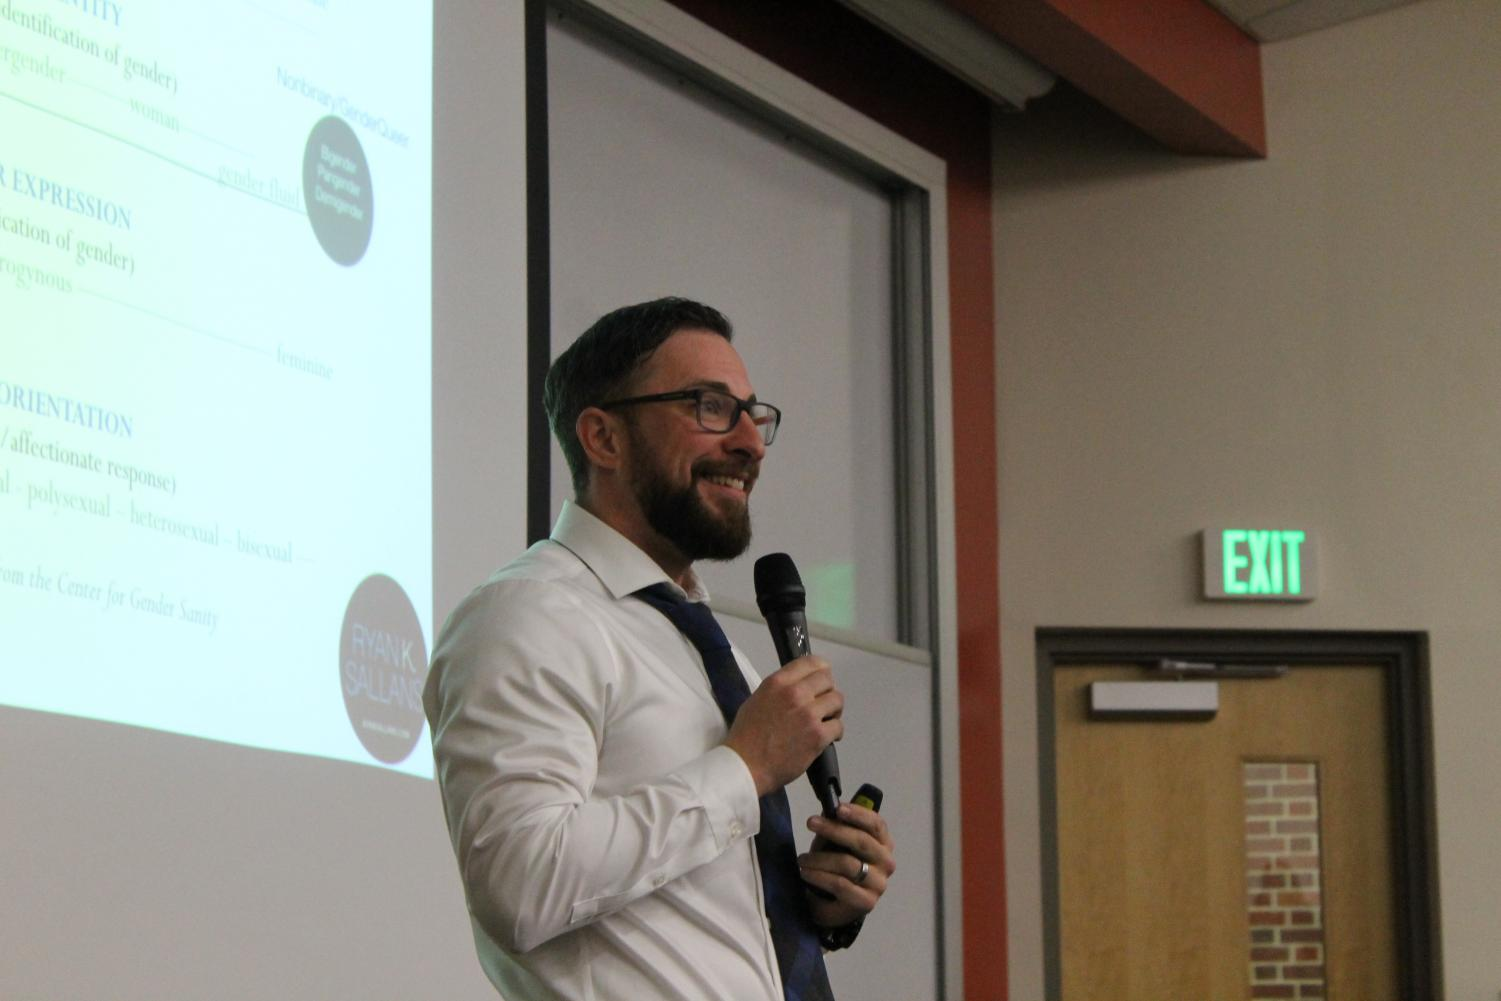 Activist and Author Ryan Sallans during his lecture on transitioning.